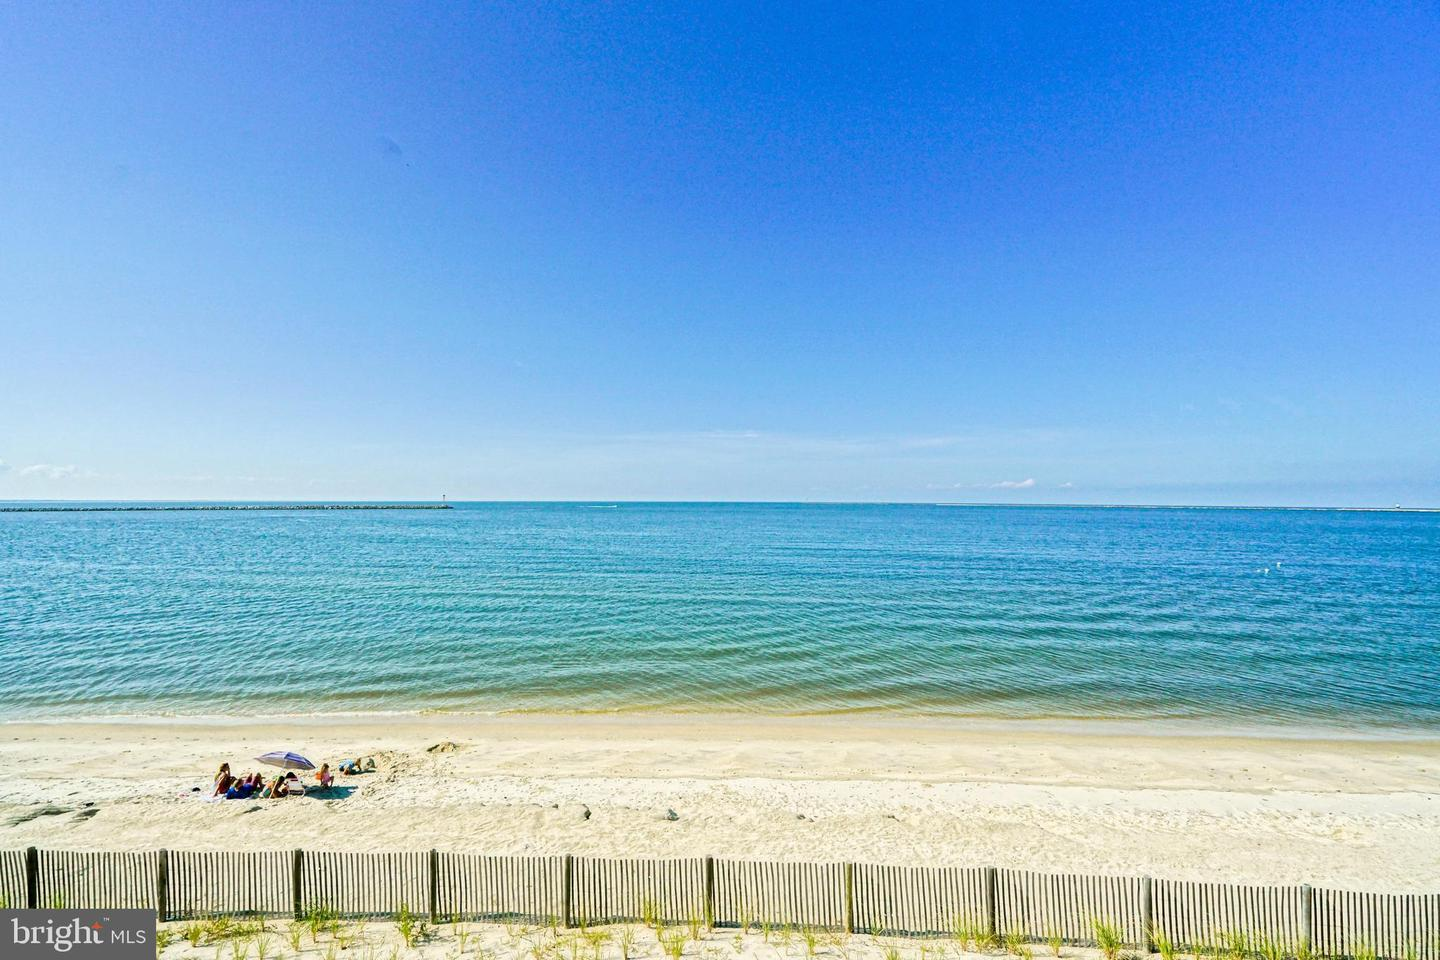 DESU147606-302022577084-2020-06-30-19-11-19 124 W Cape Shores Dr | Lewes, DE Real Estate For Sale | MLS# Desu147606  - Lee Ann Group